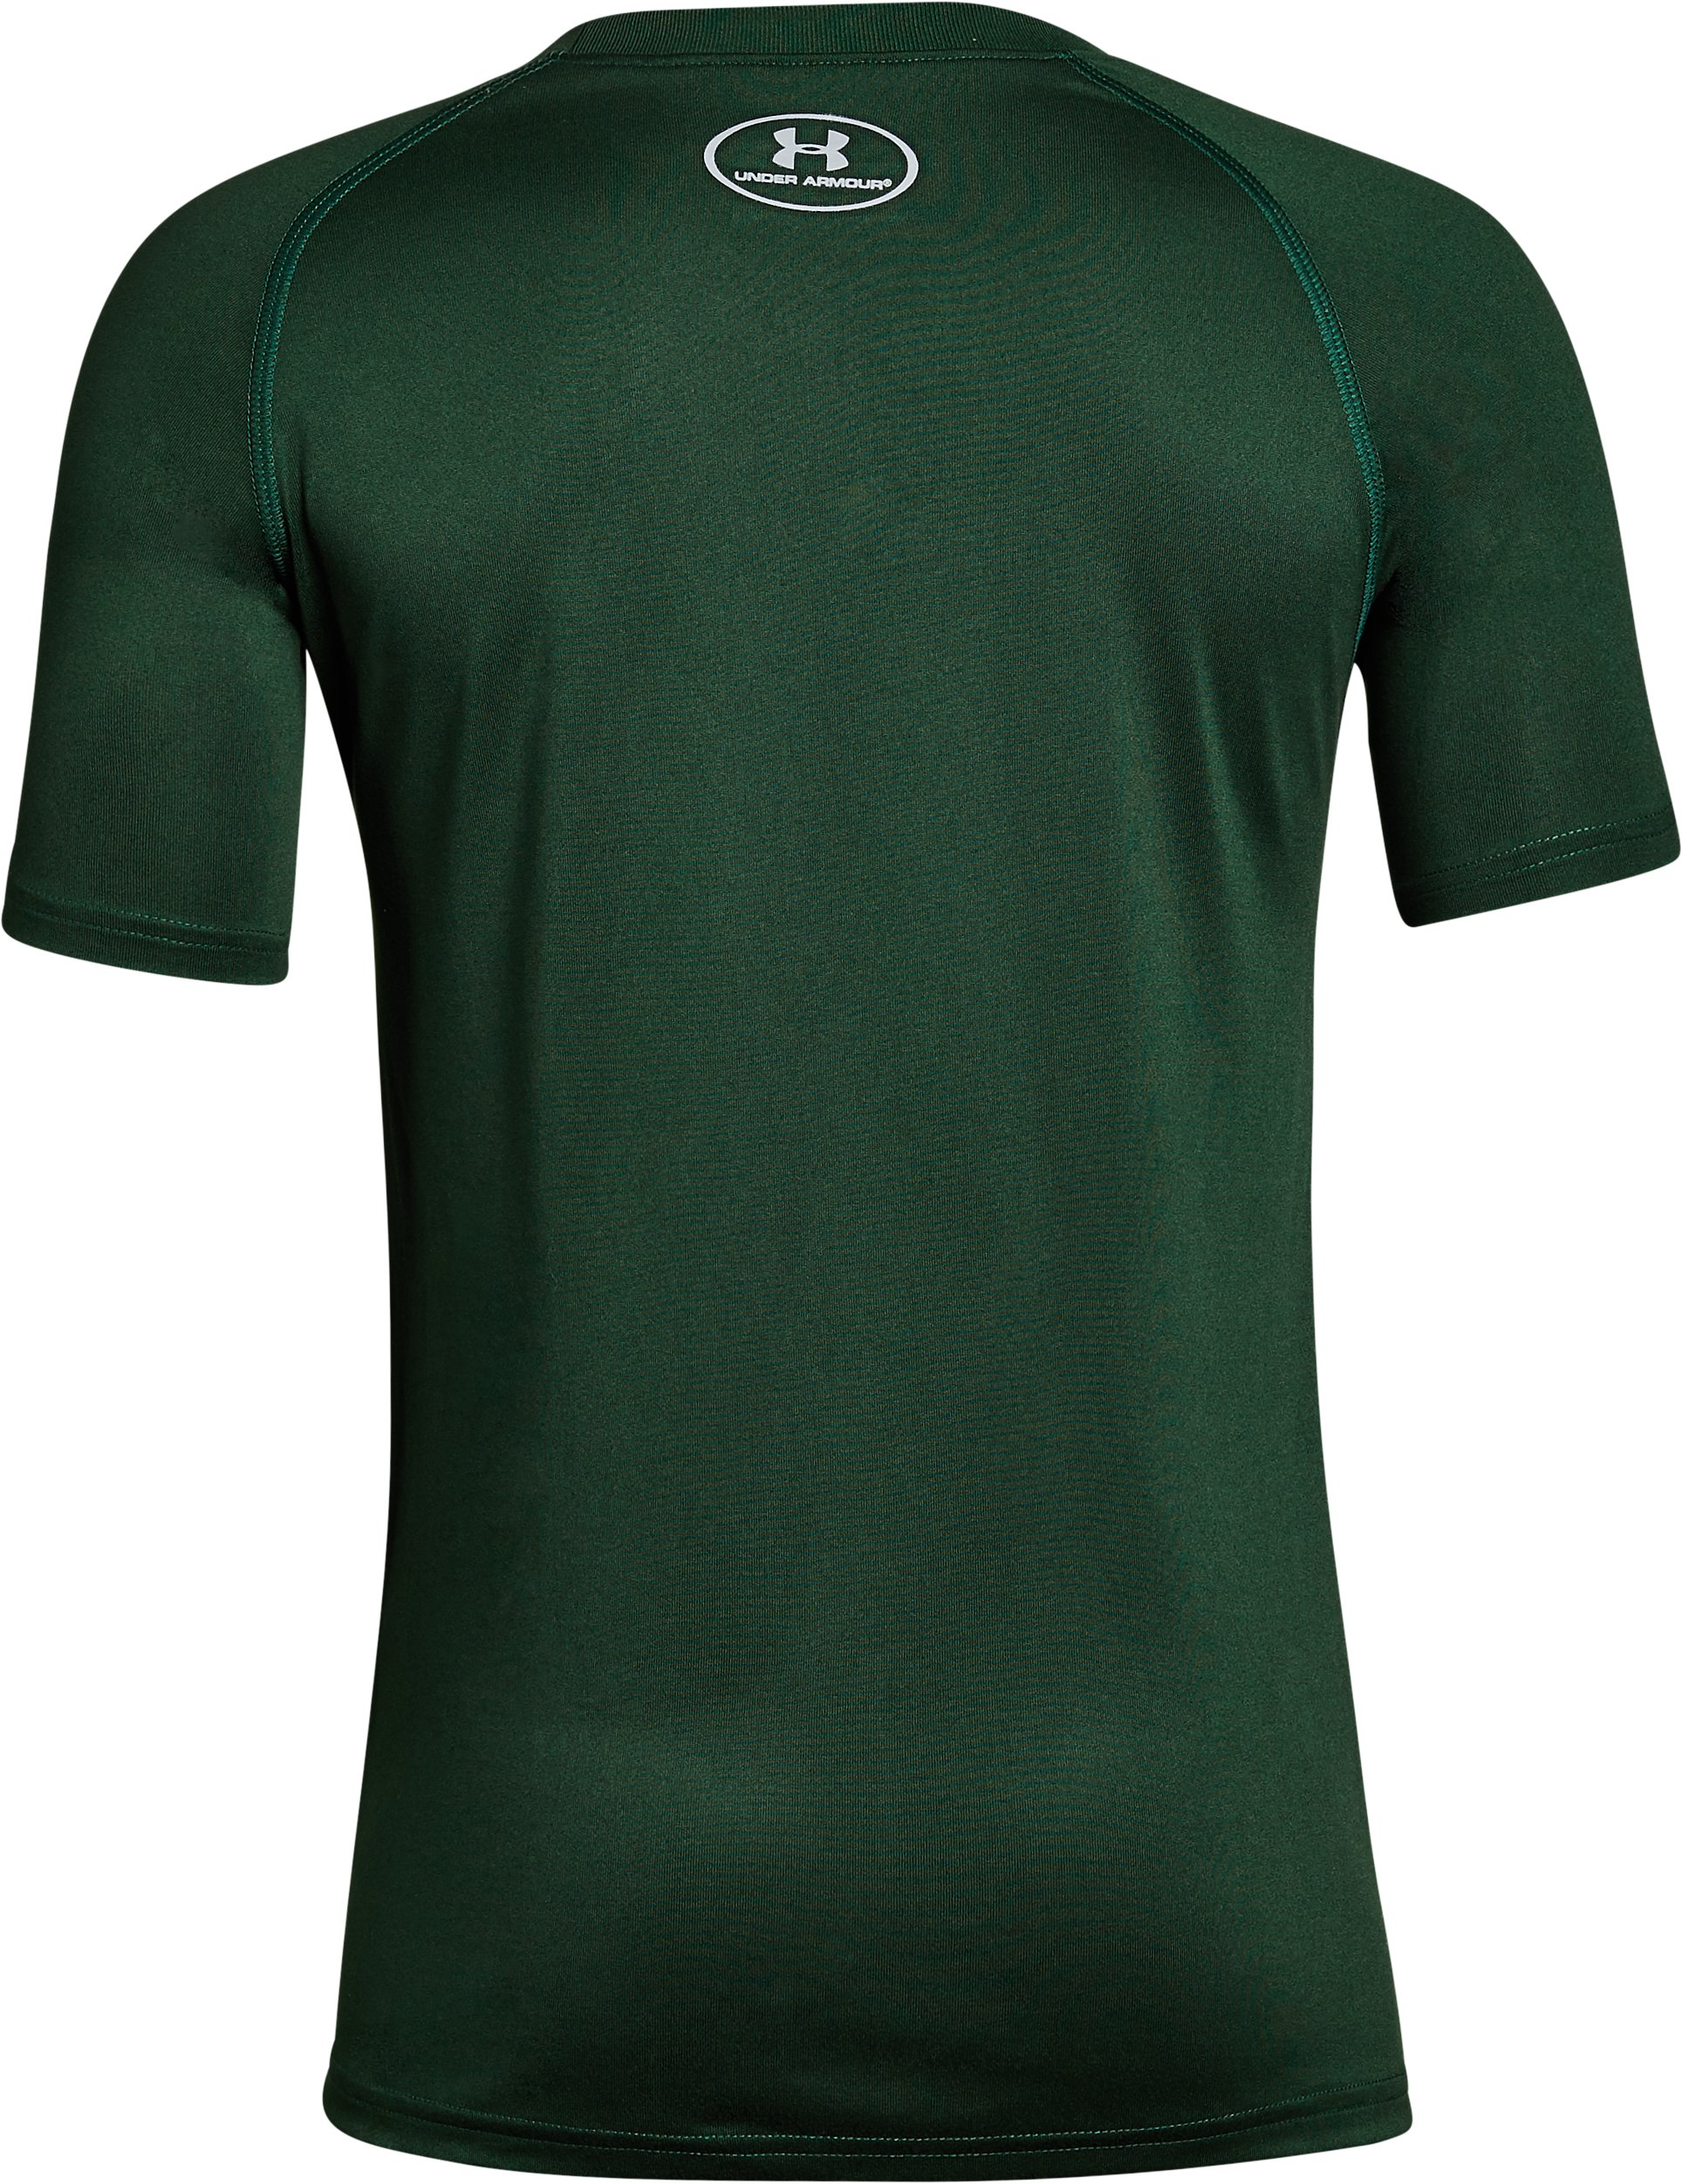 Boys' CSU Charged Cotton® T-Shirt, Forest Green,